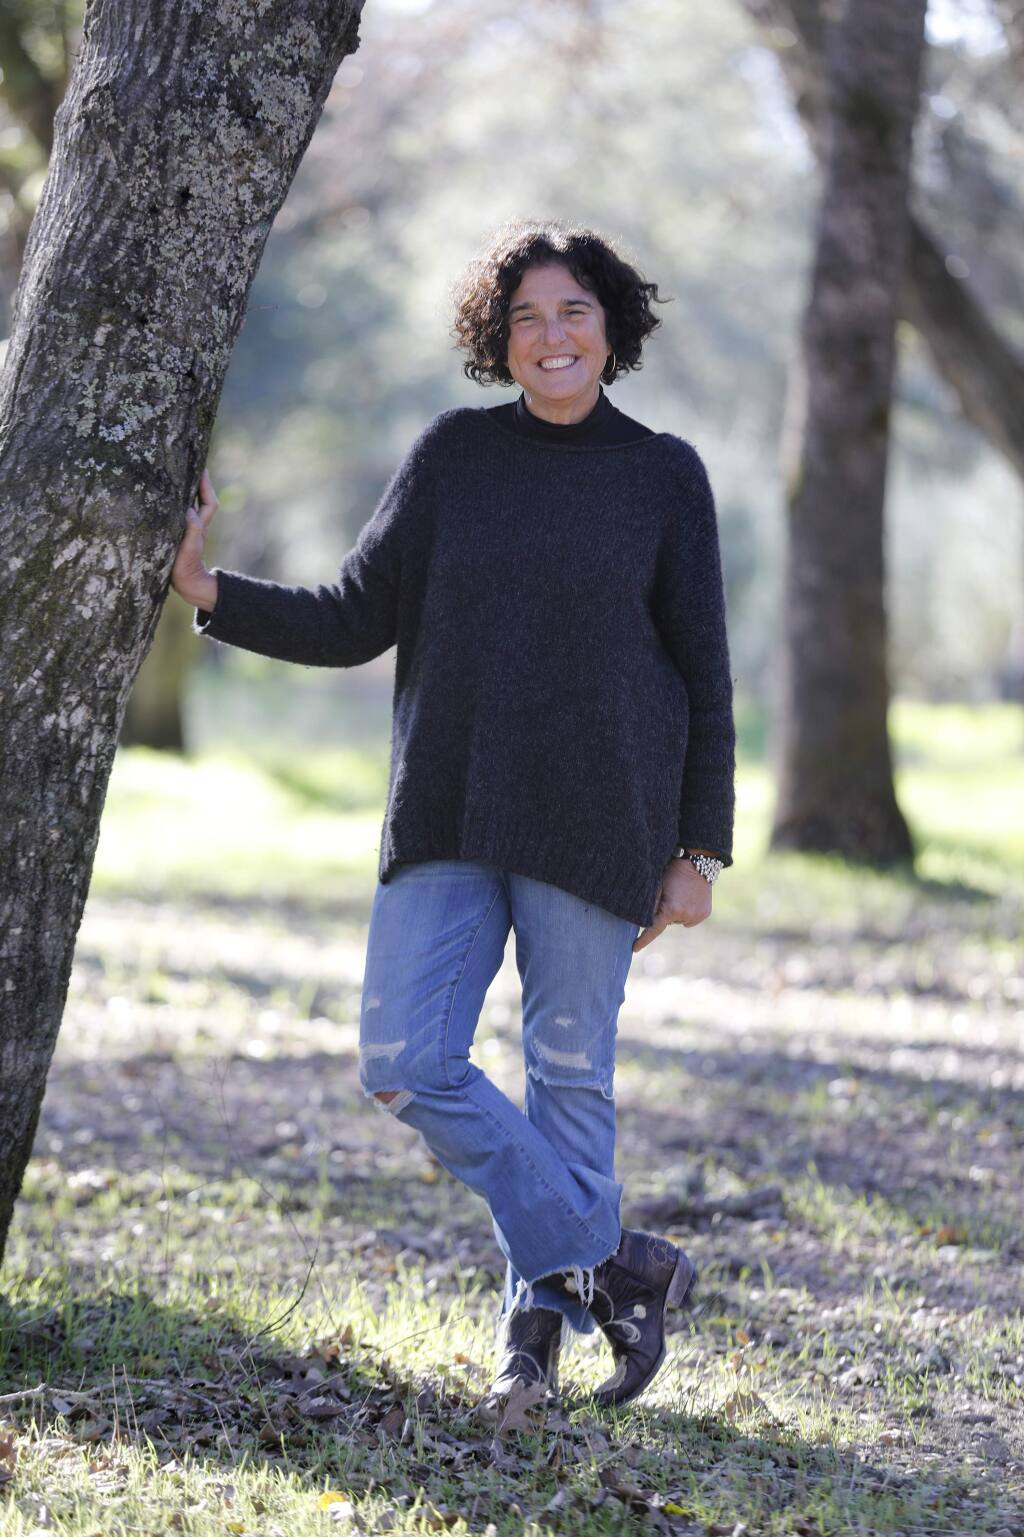 Natalie Compagni Portis at her property on Castle Rd on Monday, December 31, 2018 in Sonoma, California . (BETH SCHLANKER/The Press Democrat)